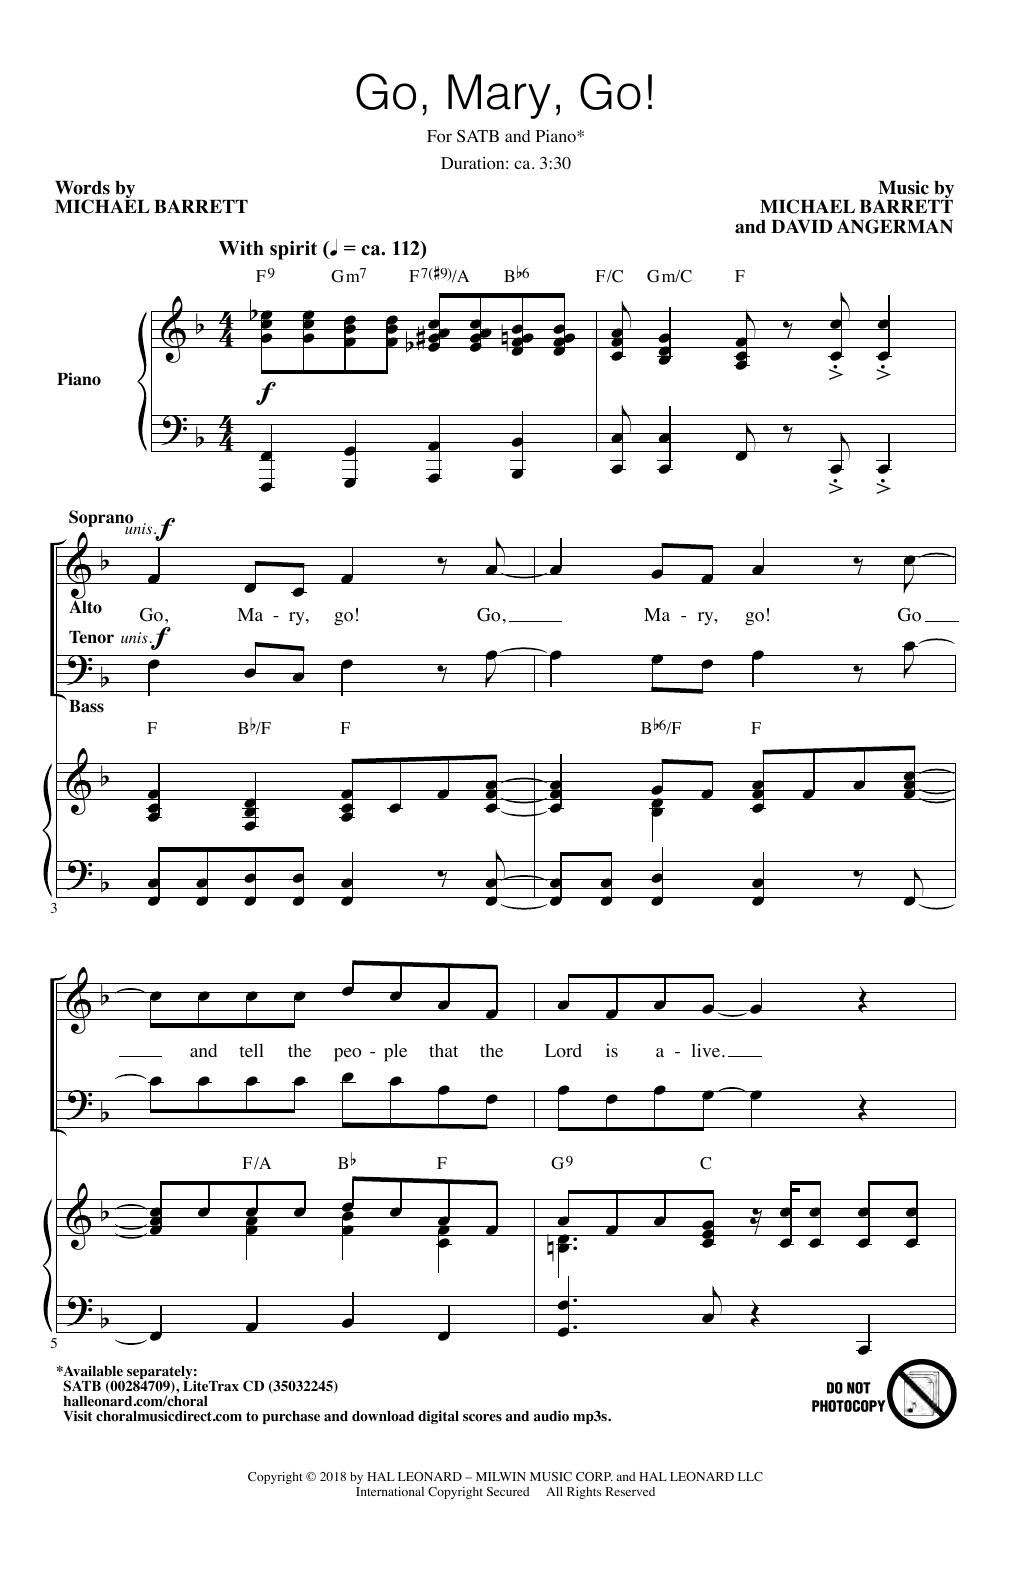 Go, Mary, Go! (SATB Choir)